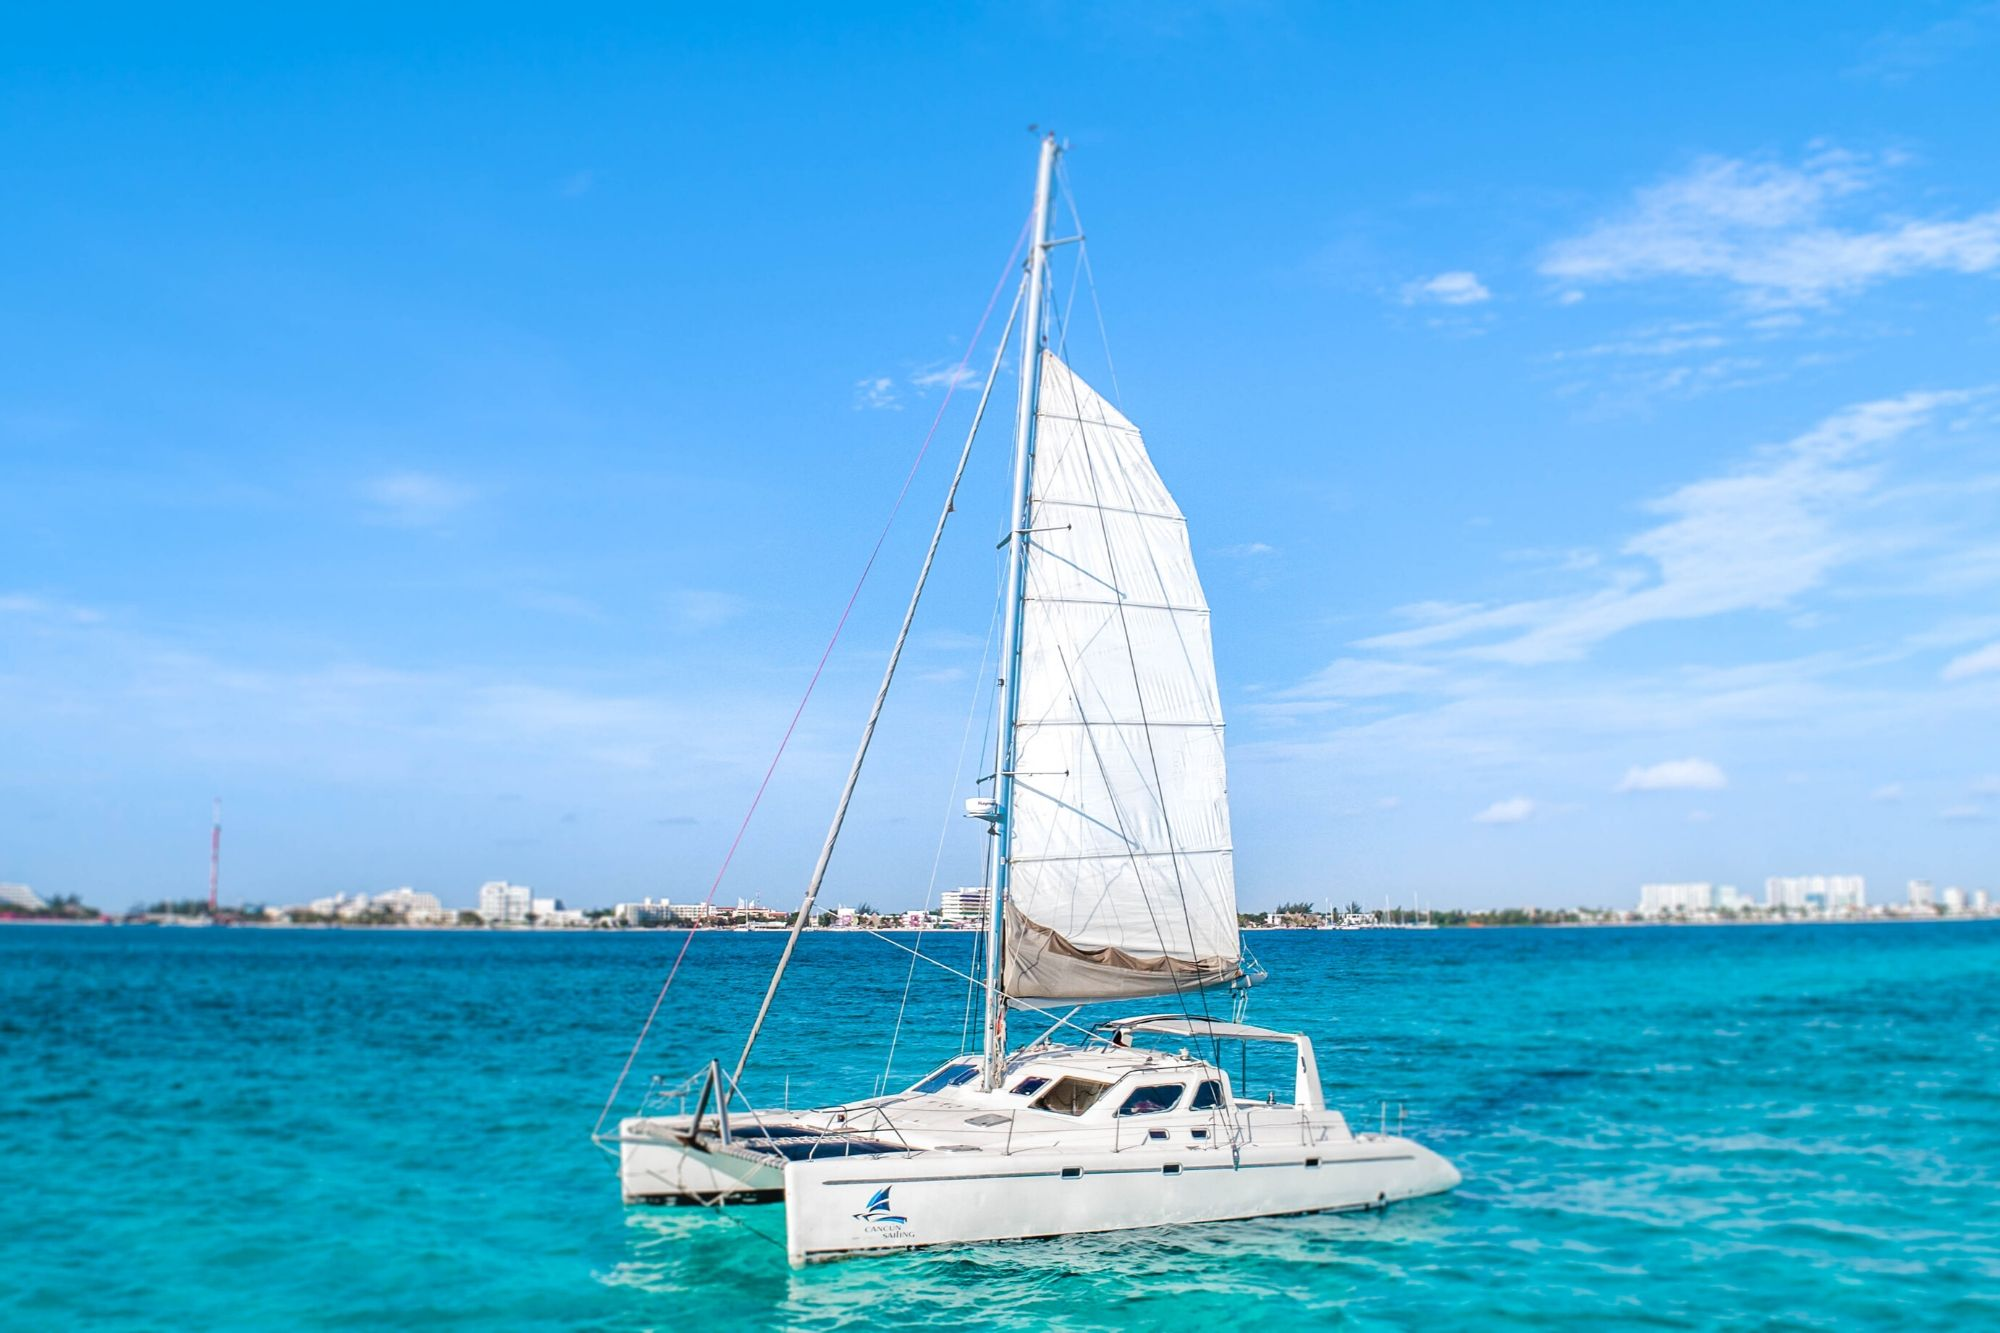 6 - Paradise explorer - Private Isla Mujeres catamaran tour - Cancun Sailing